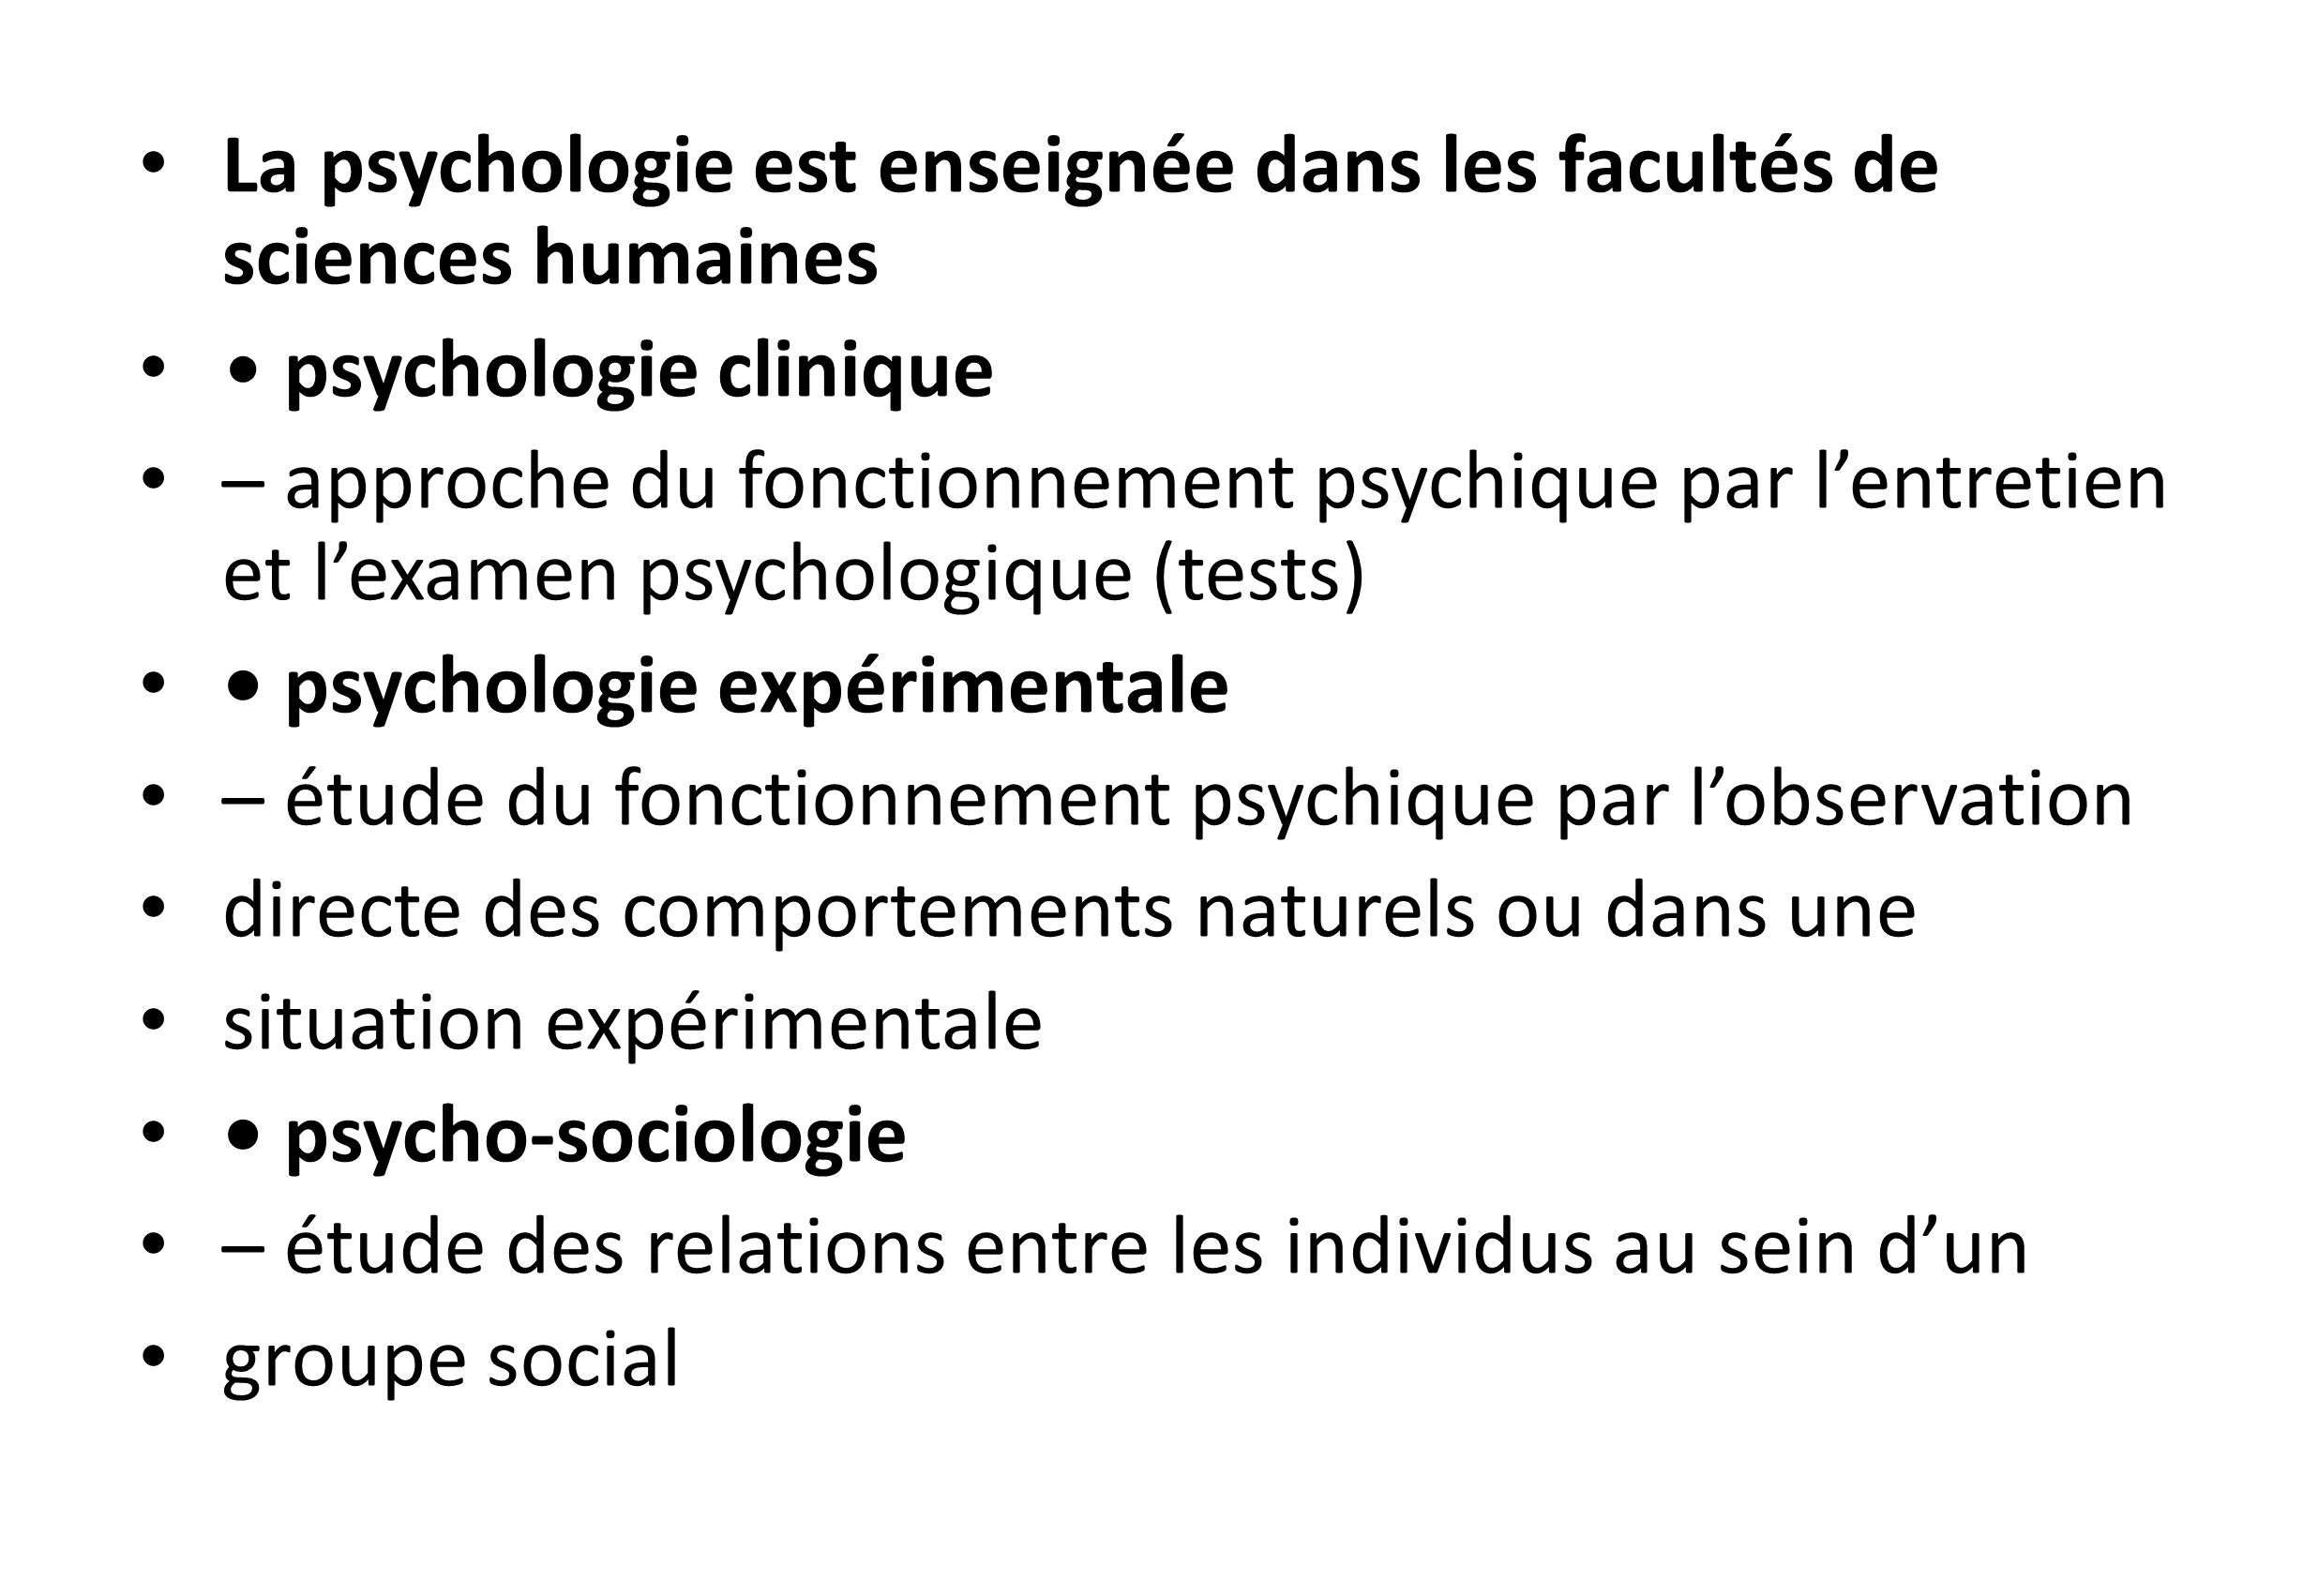 Formation en psychologie, je reprends mes études